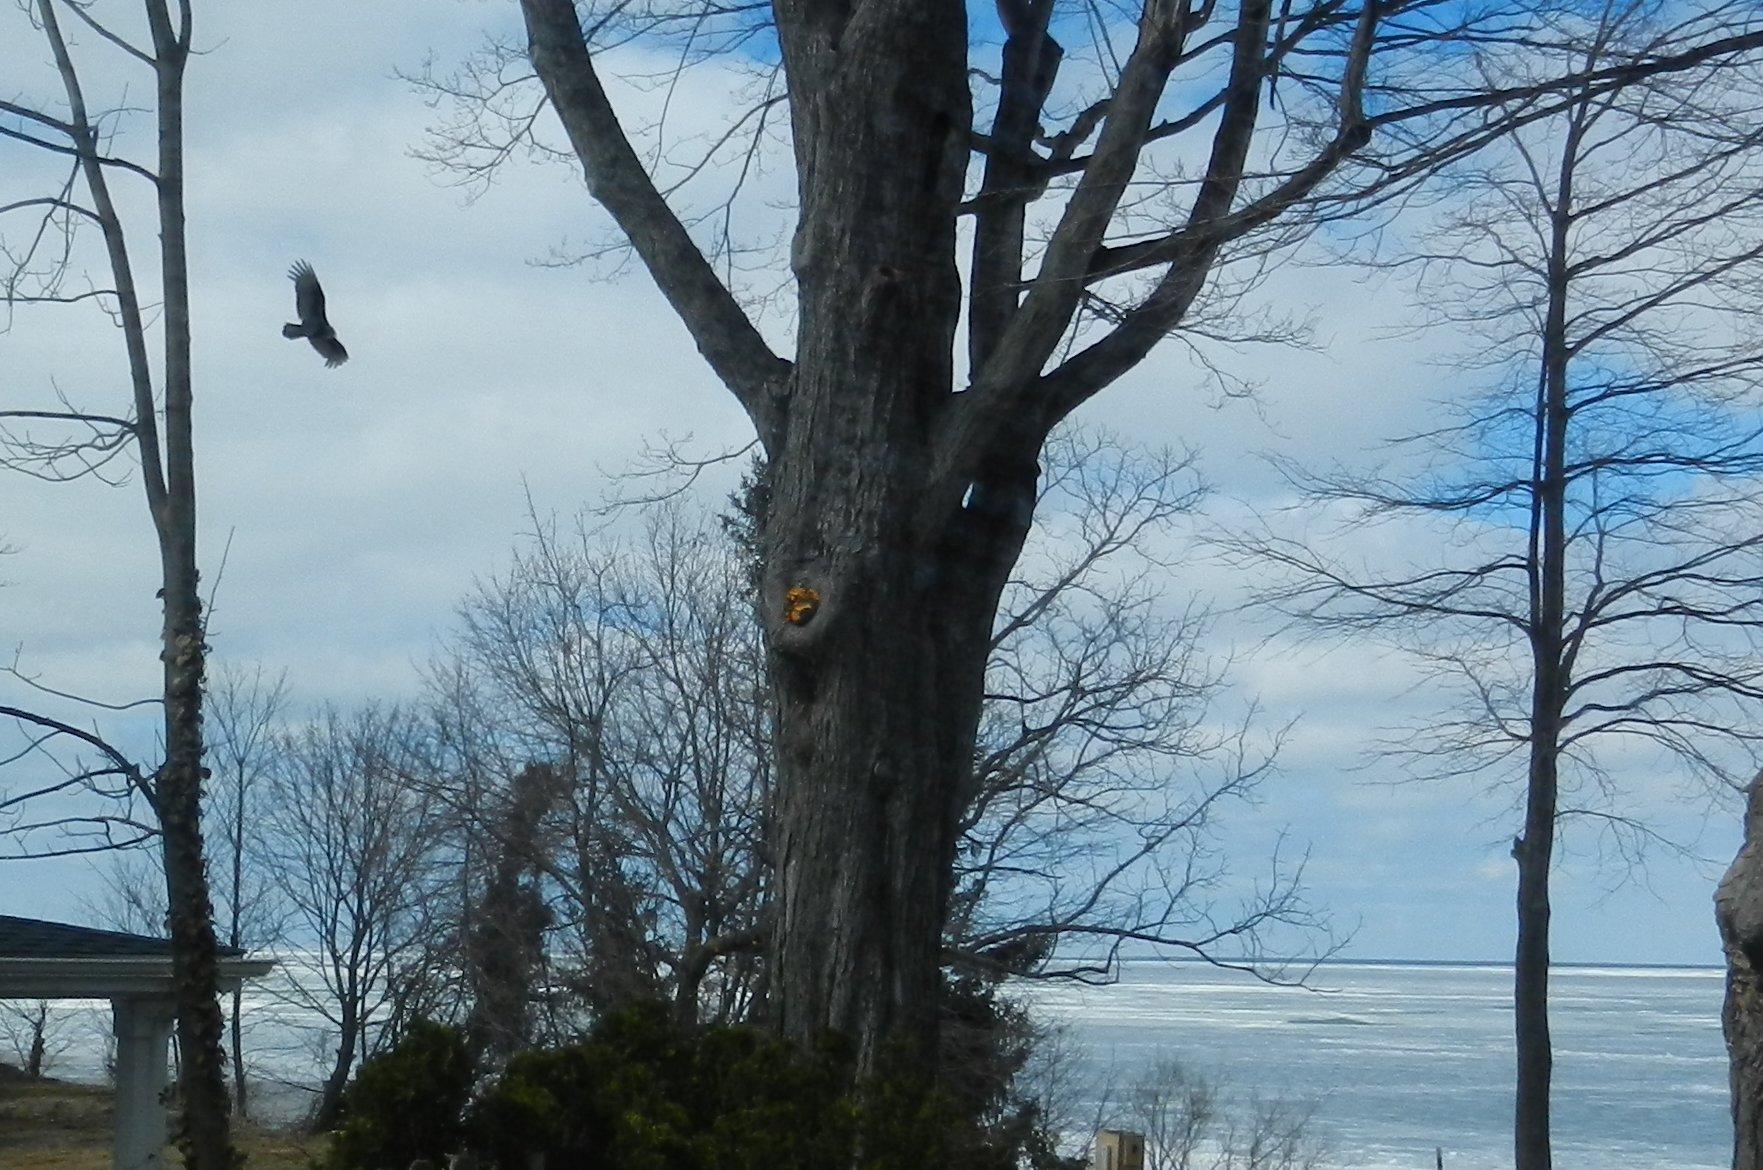 First buzzards of the year scouring the ice on Lake Erie for dead fish.